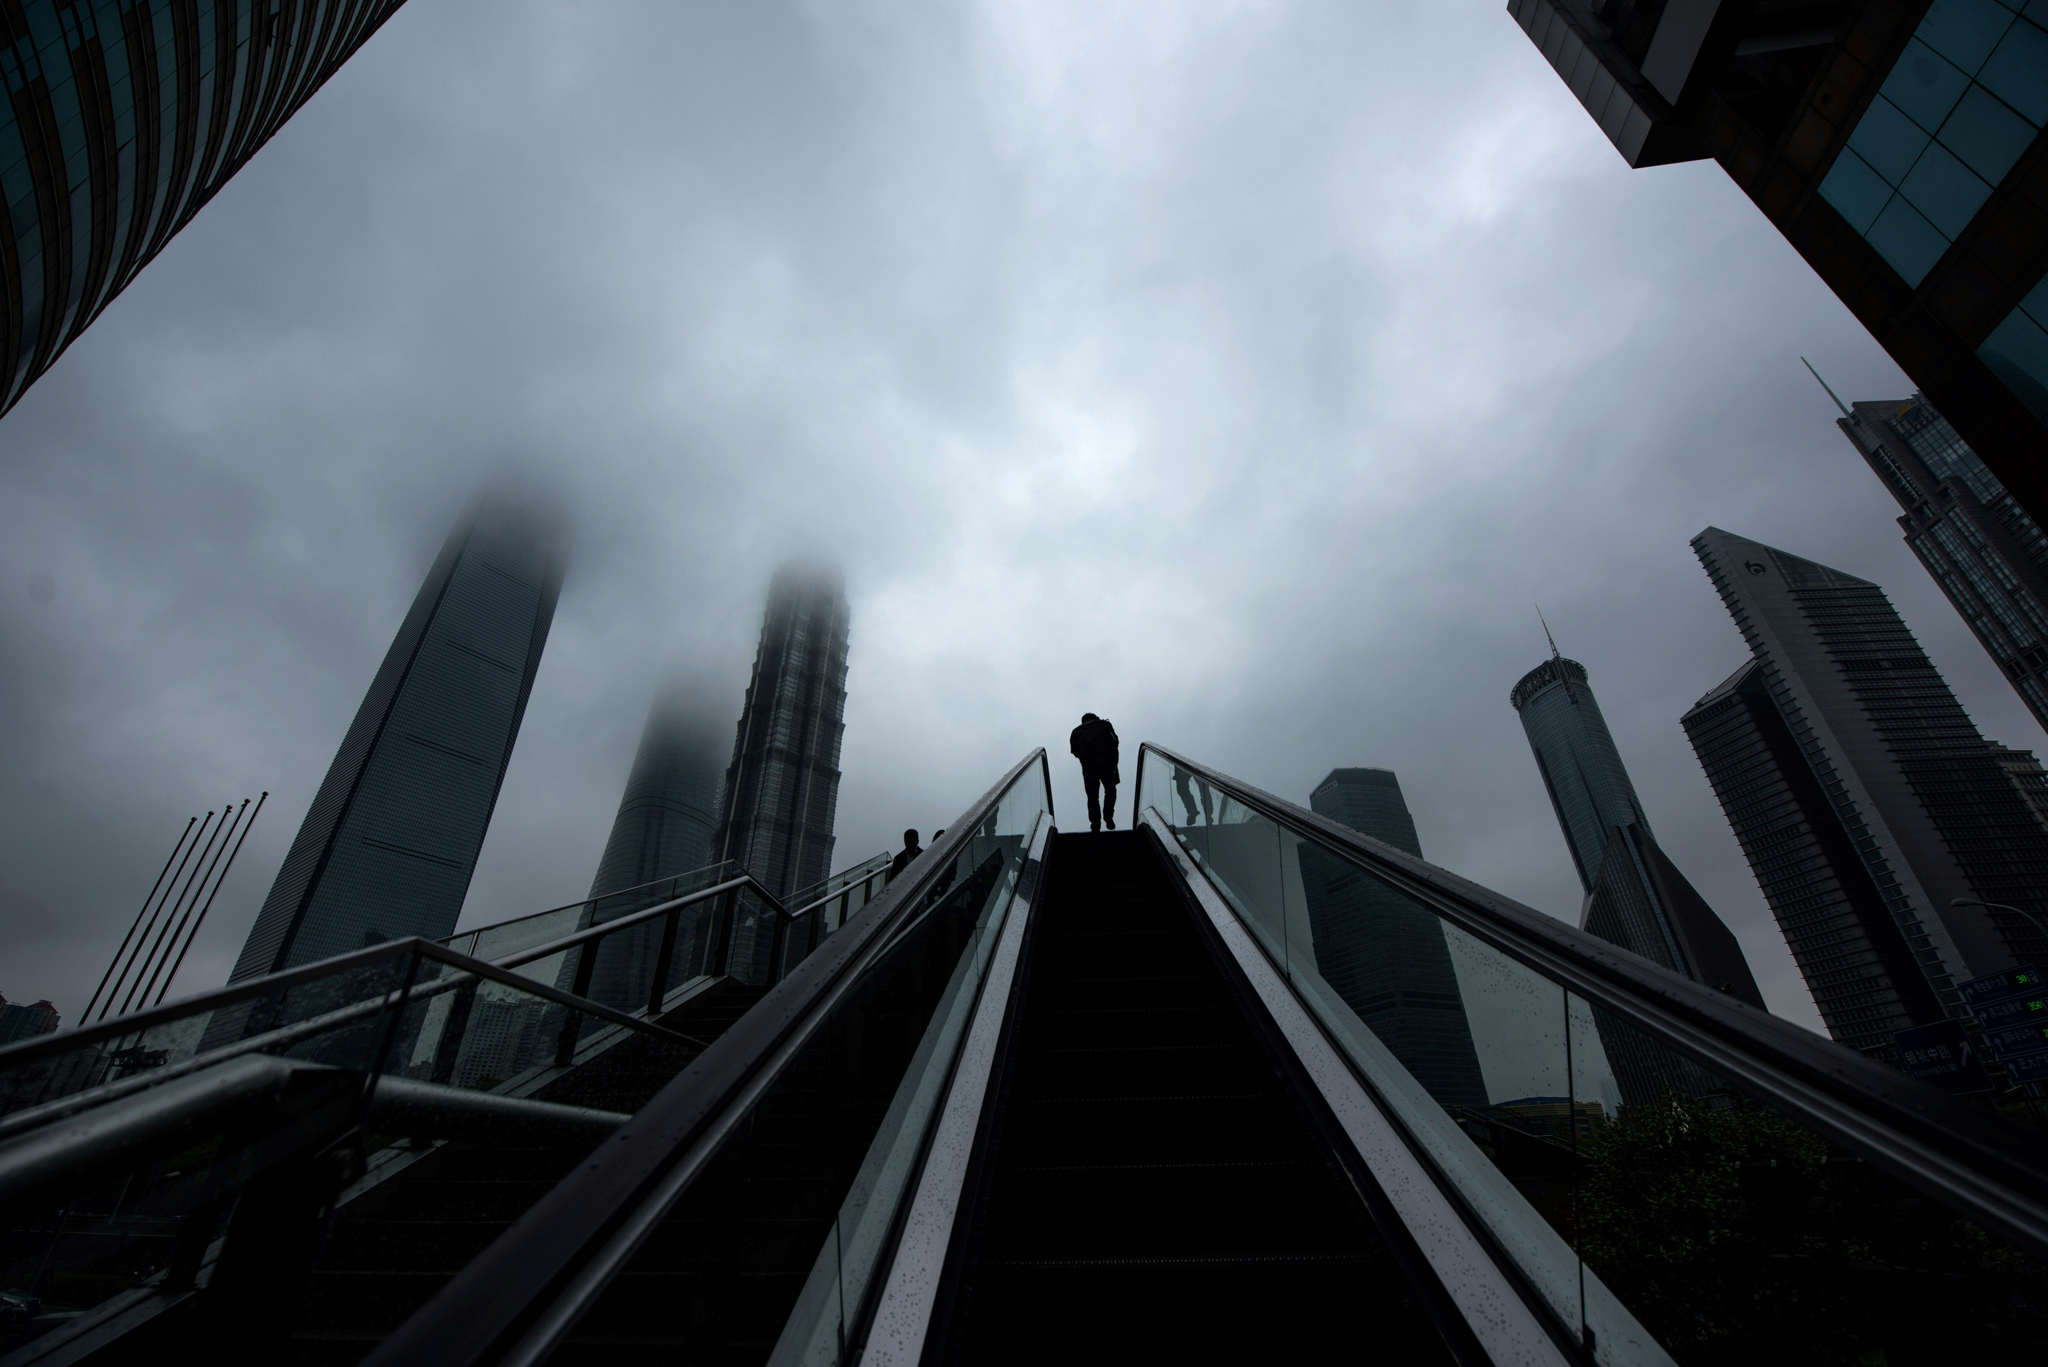 A man rides an escalator in front of hig...A man rides an escalator in front of high rise buildings in the financial district Lujiazui in Shanghai on April 6, 2016.  / AFP PHOTO / JOHANNES EISELEJOHANNES EISELE/AFP/Getty Images